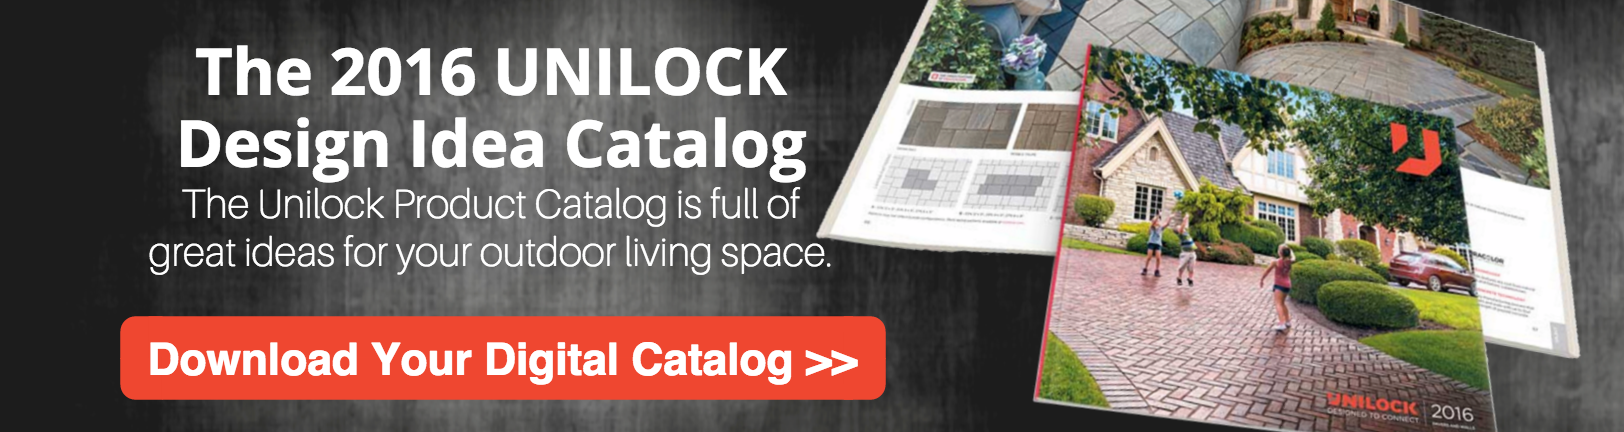 Unilock Catalog of Pavers, Retaining Walls, Outdoor Kitchens and more for hudson valley